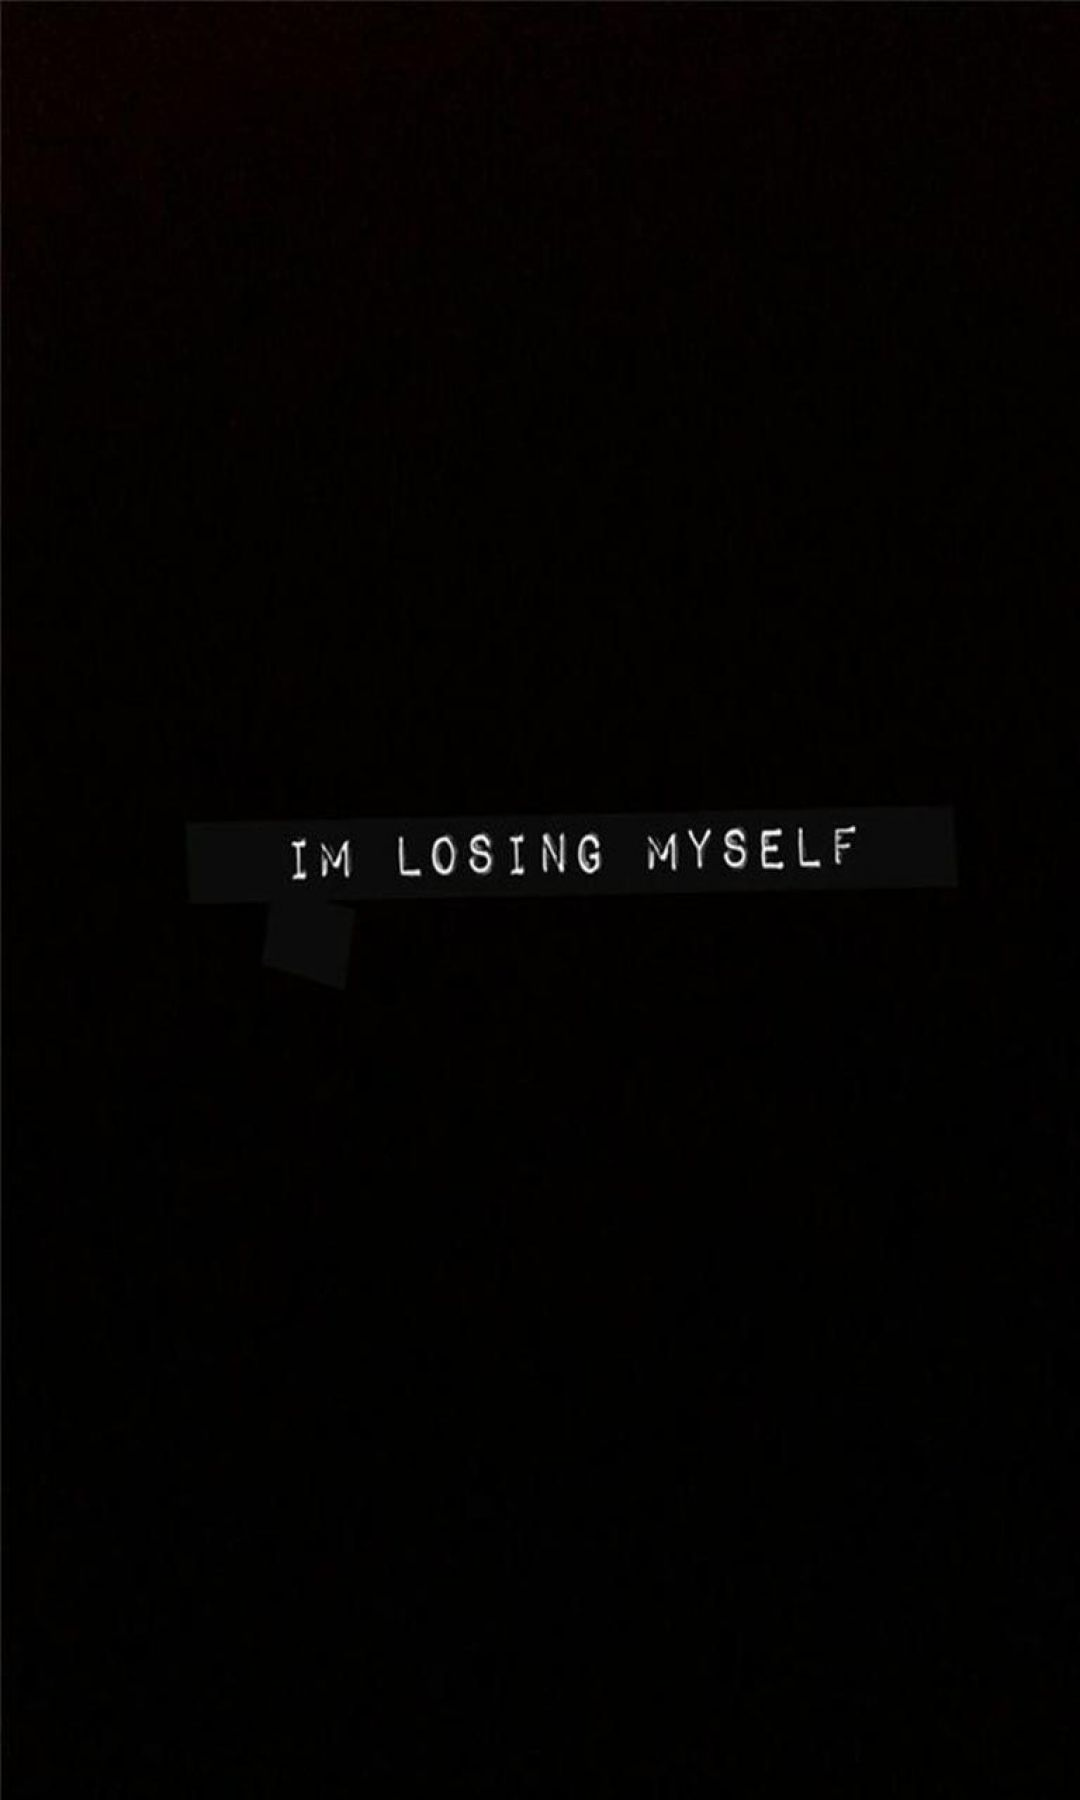 45+ Aesthetic Black Quotes - Android, iPhone, Desktop HD ...